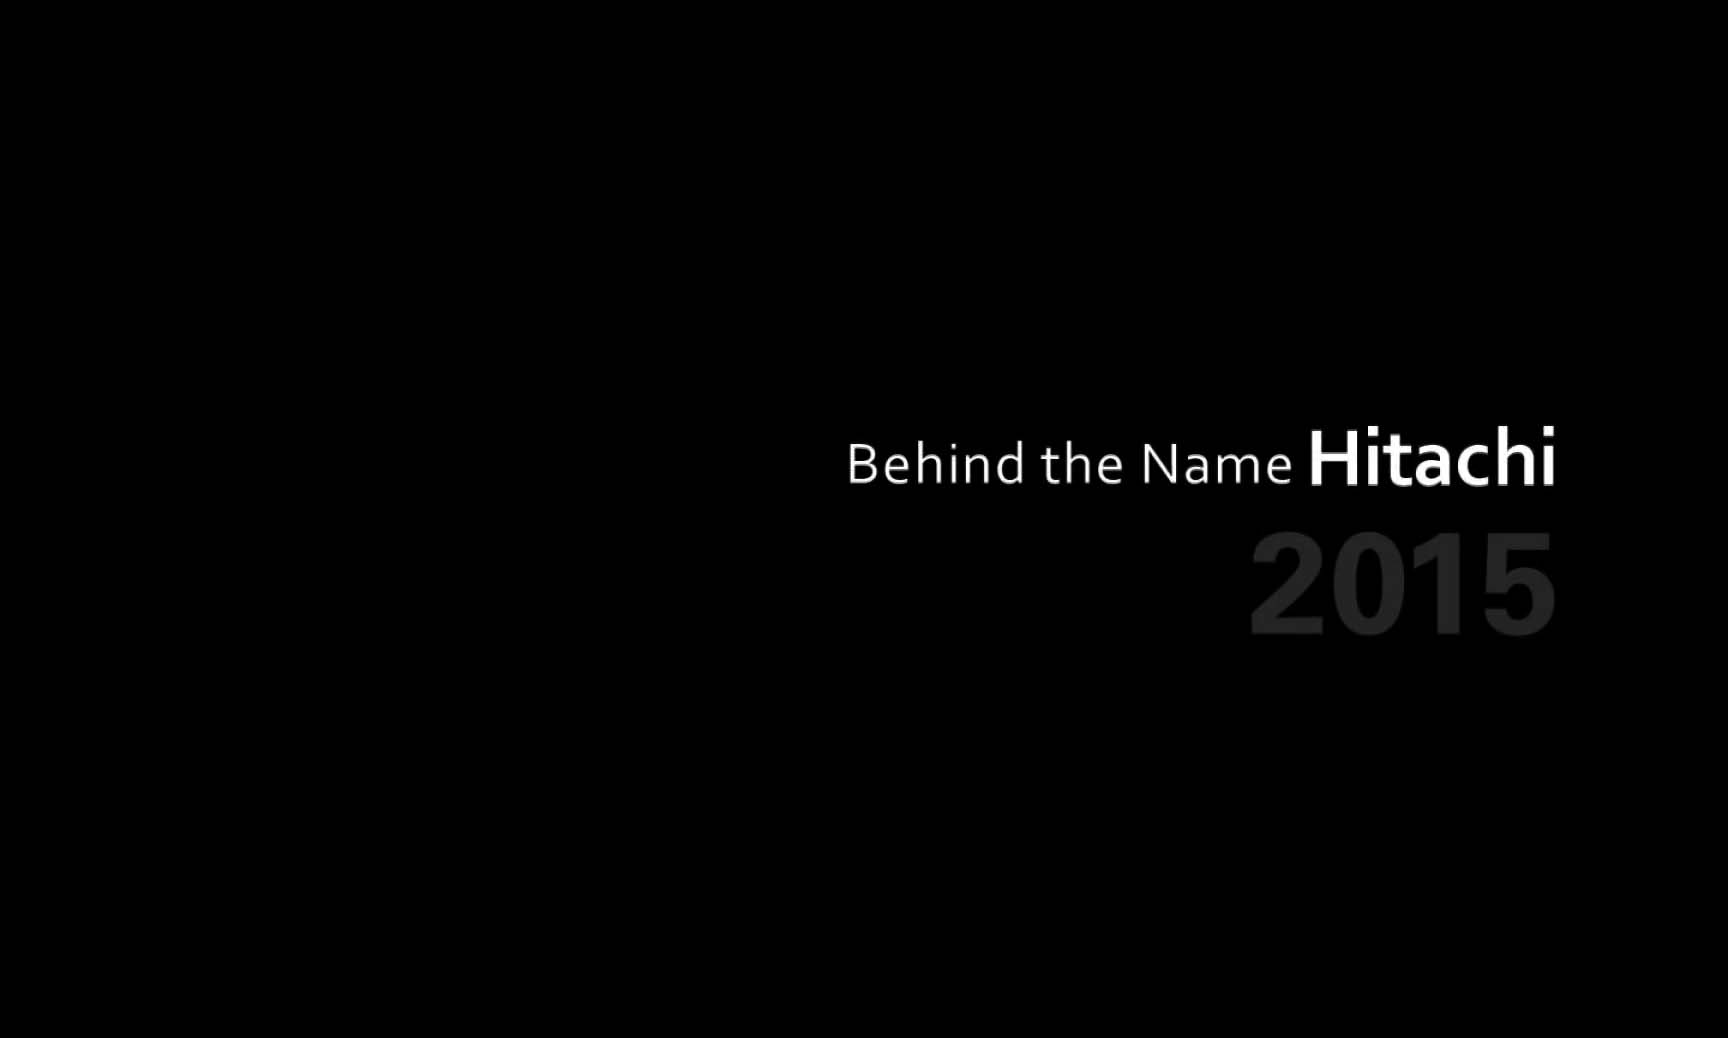 Behind the Name Hitachi 2015